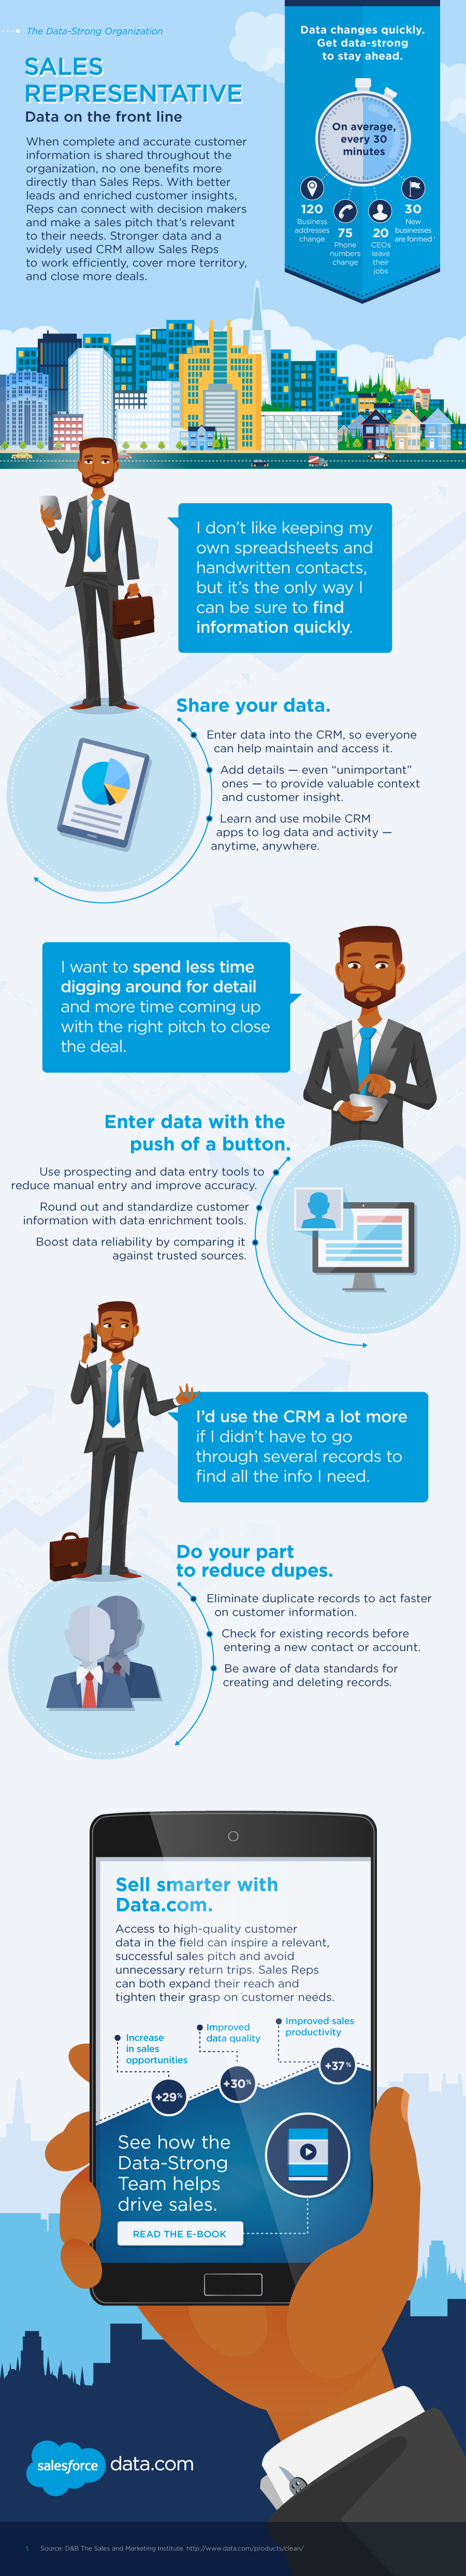 Data-Sales-Rep-Infographic-Salesforce